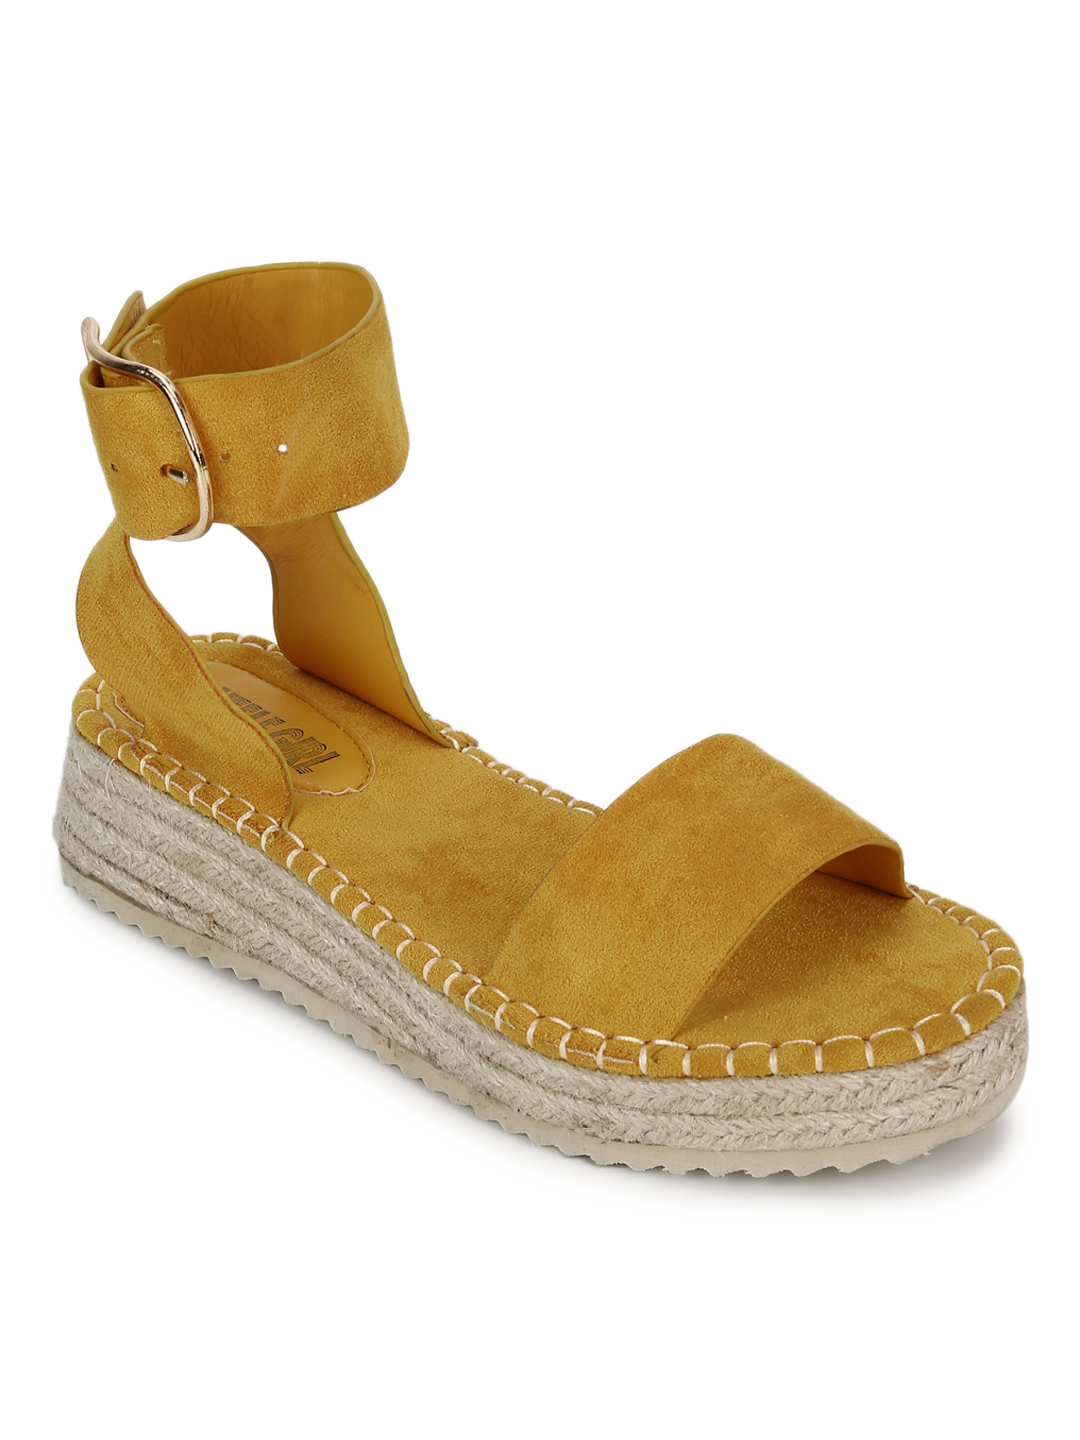 Truffle Collection   Yellow Suede Wedges Sandals With Jute Sole